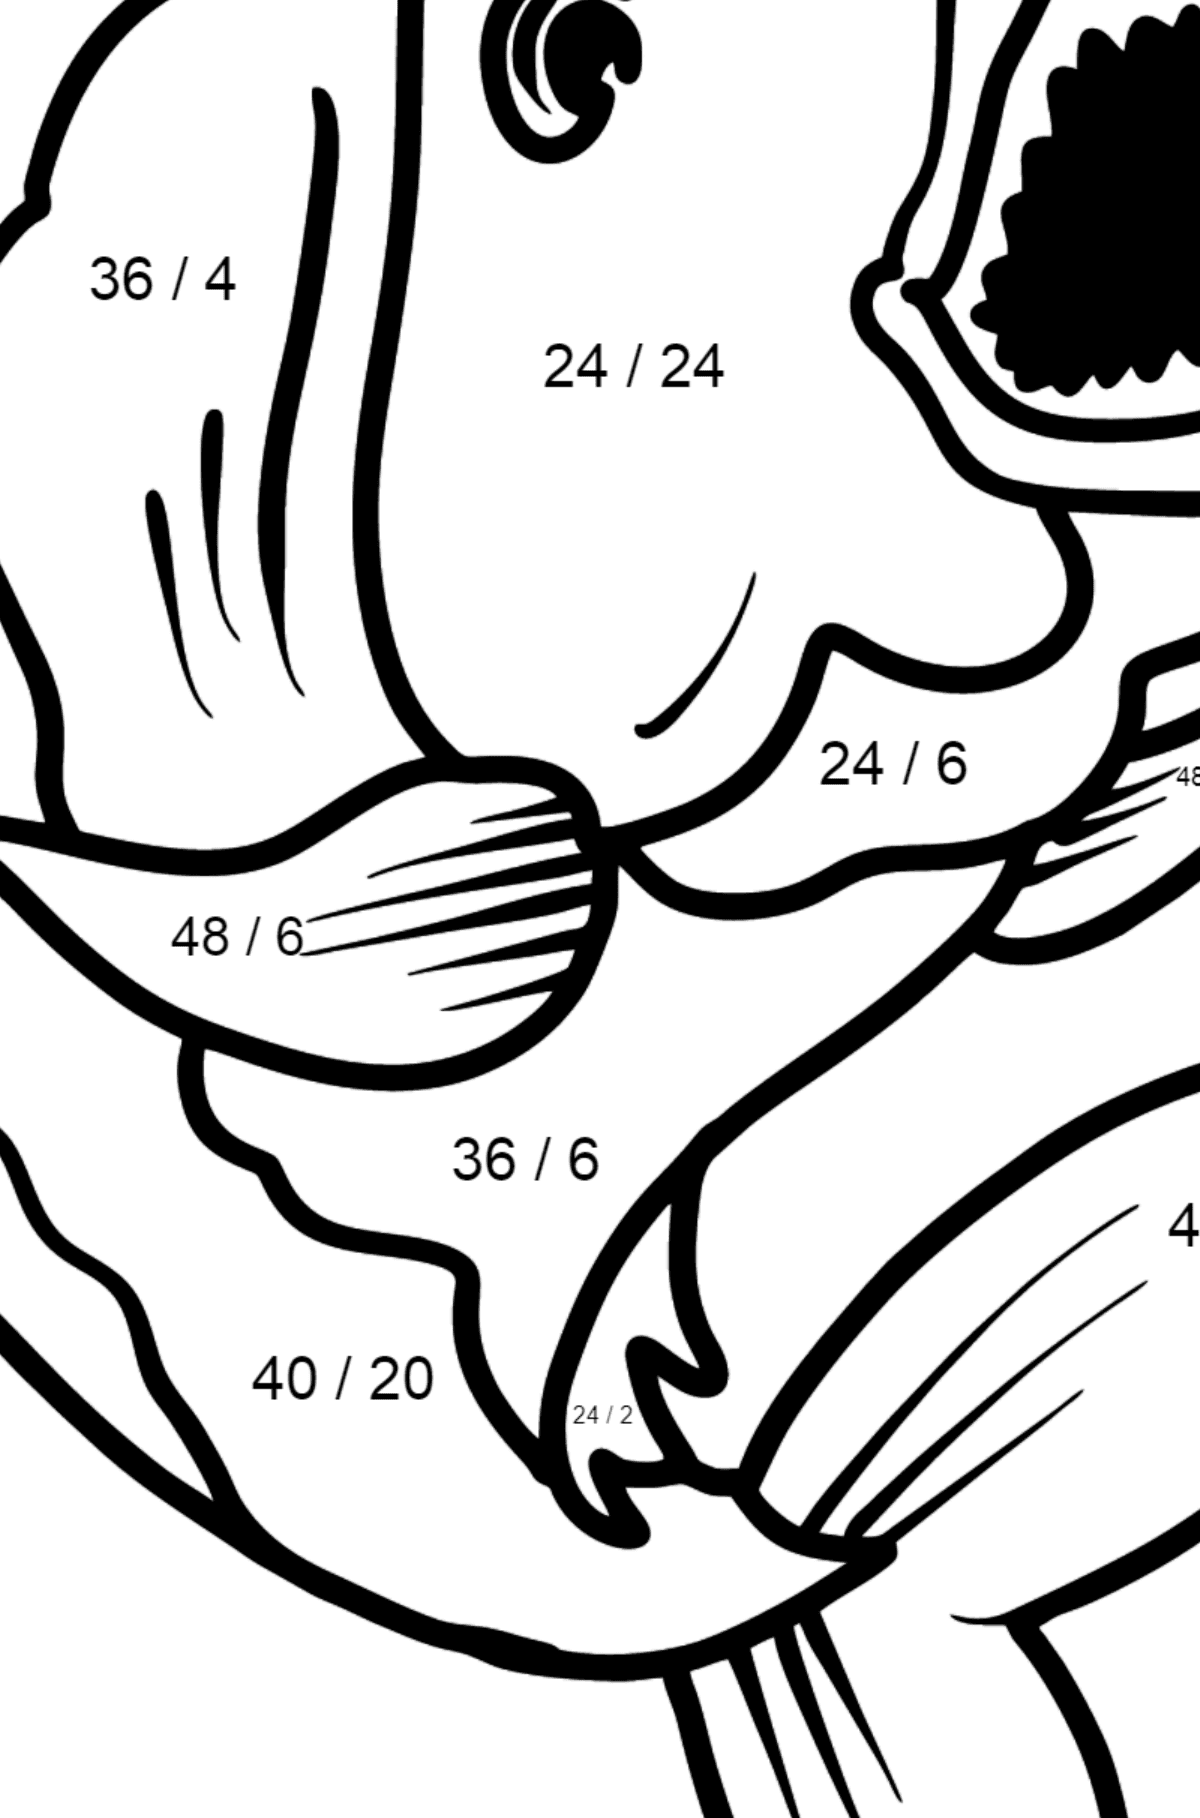 Piranha coloring page - Math Coloring - Division for Kids